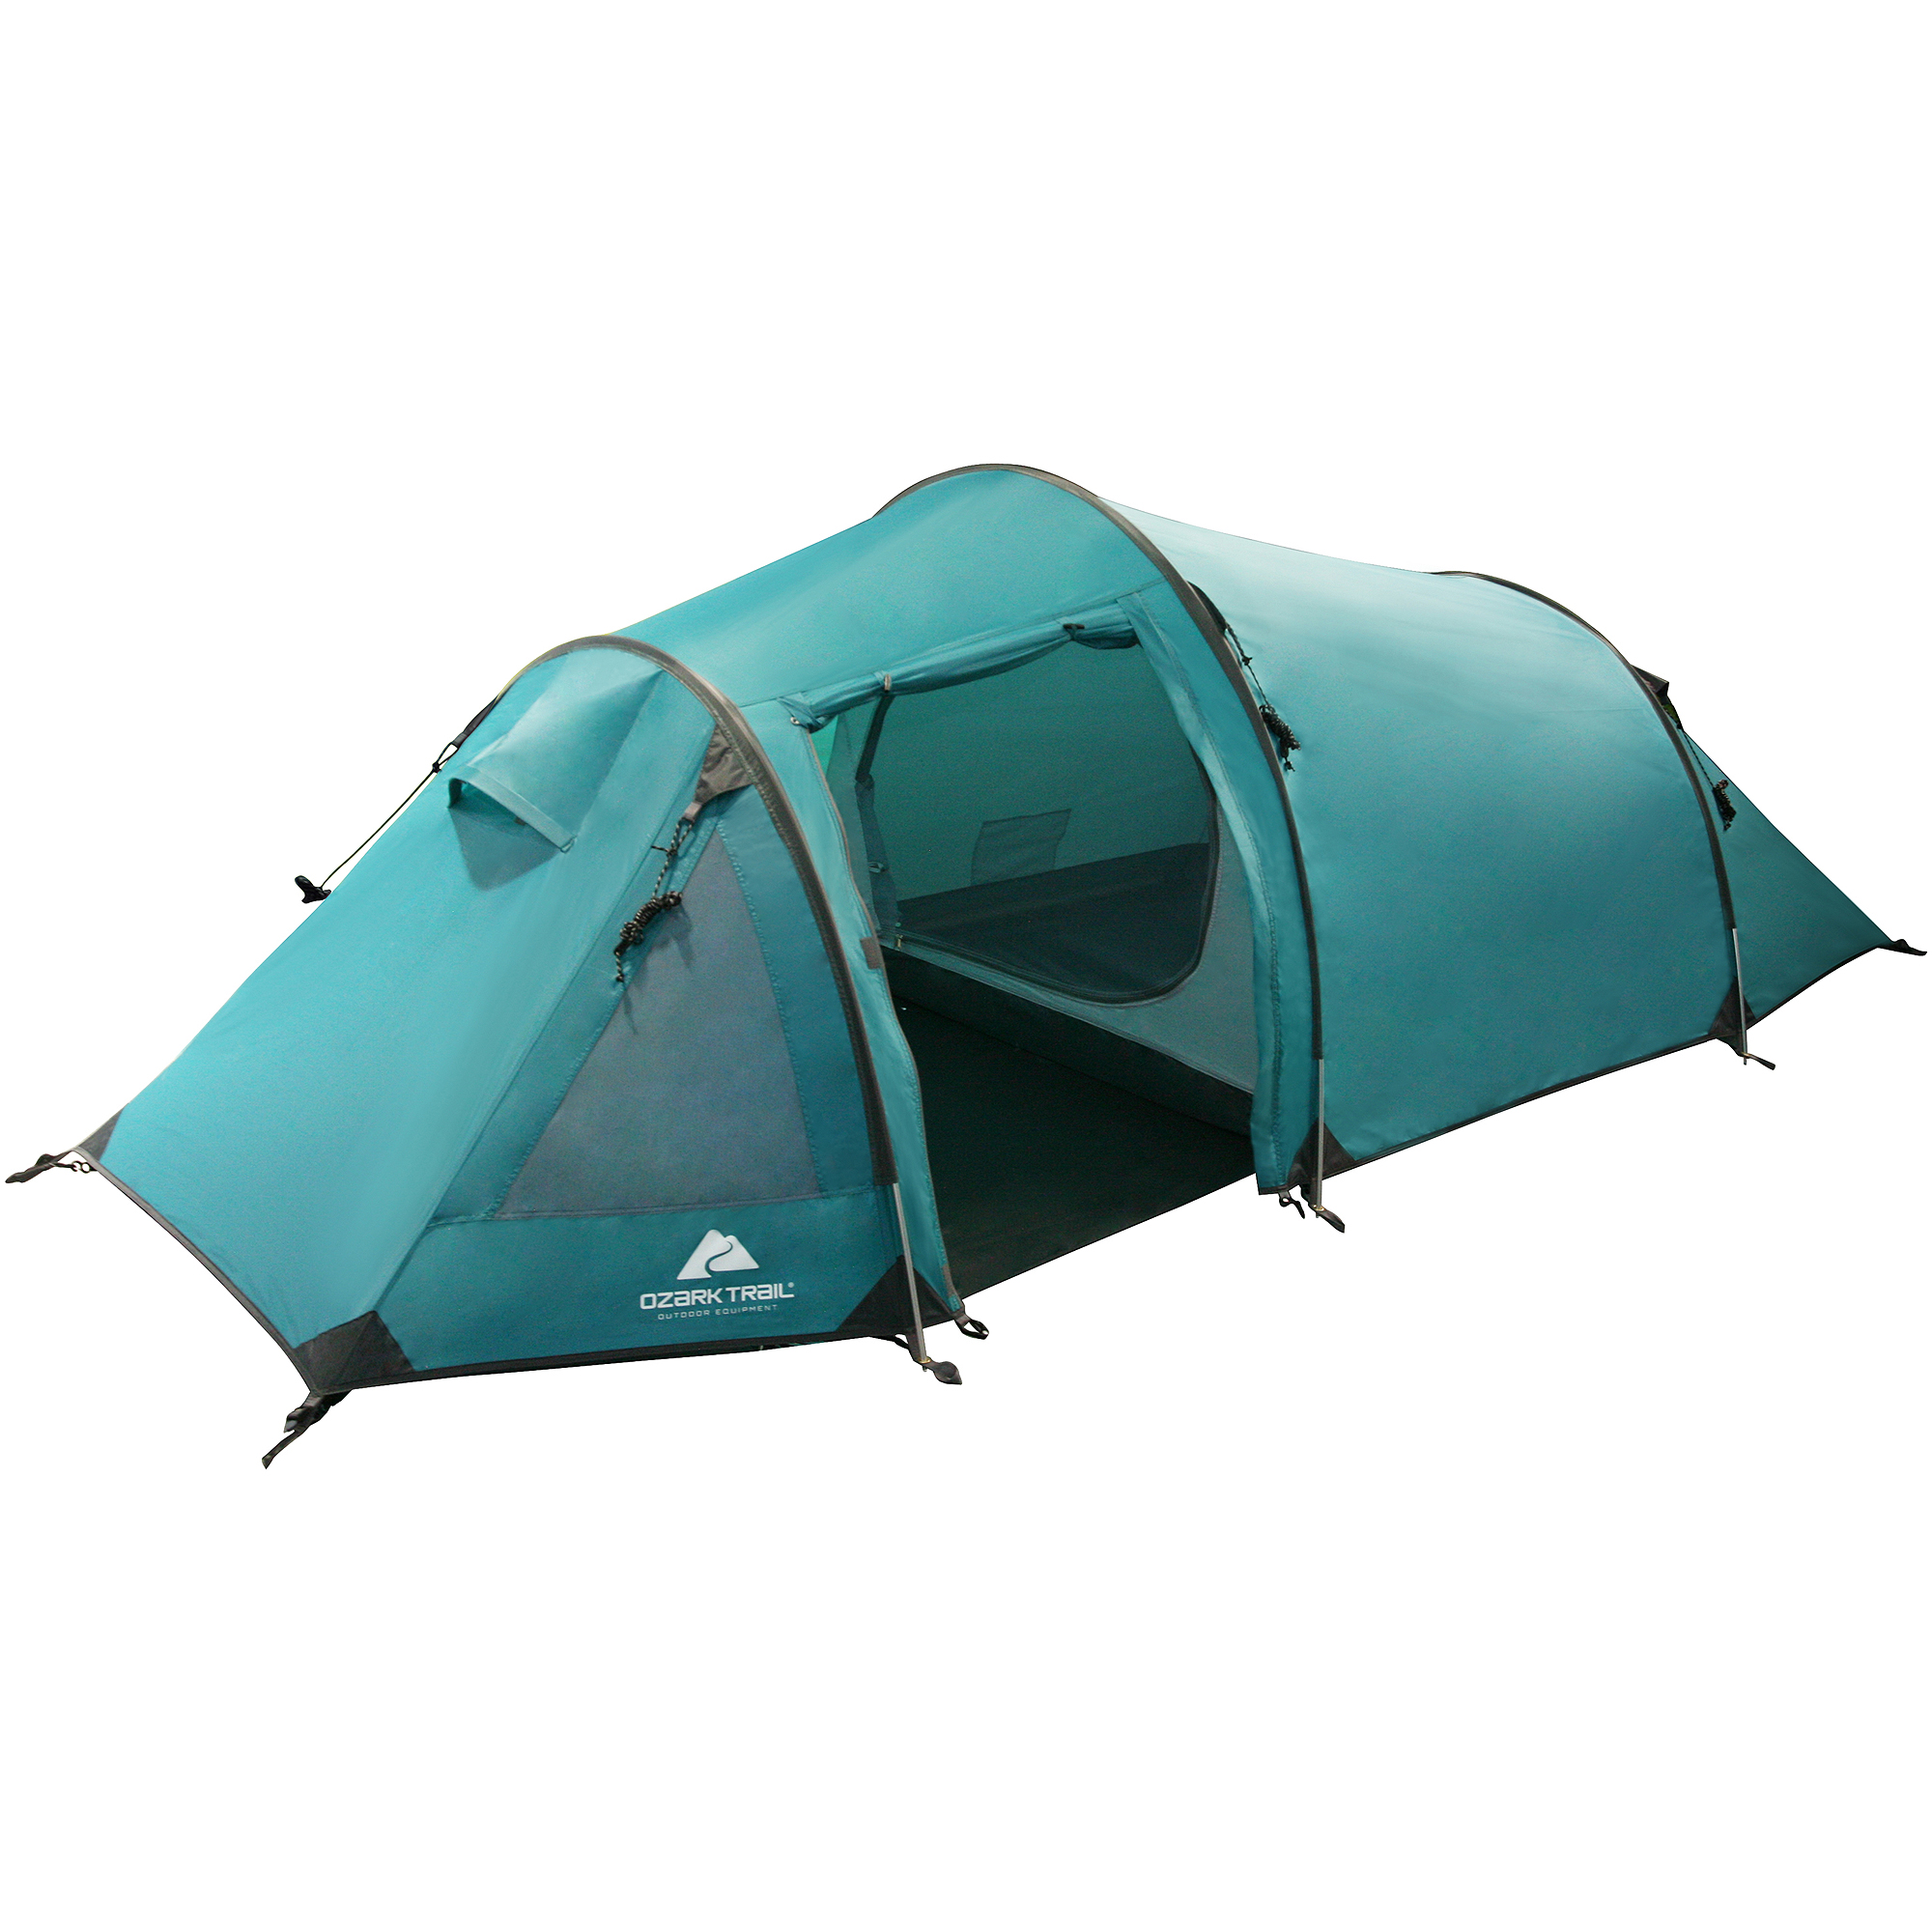 225 & Ozark Trail Extended Stay Backpacking Tent Sleeps 2 on PopScreen